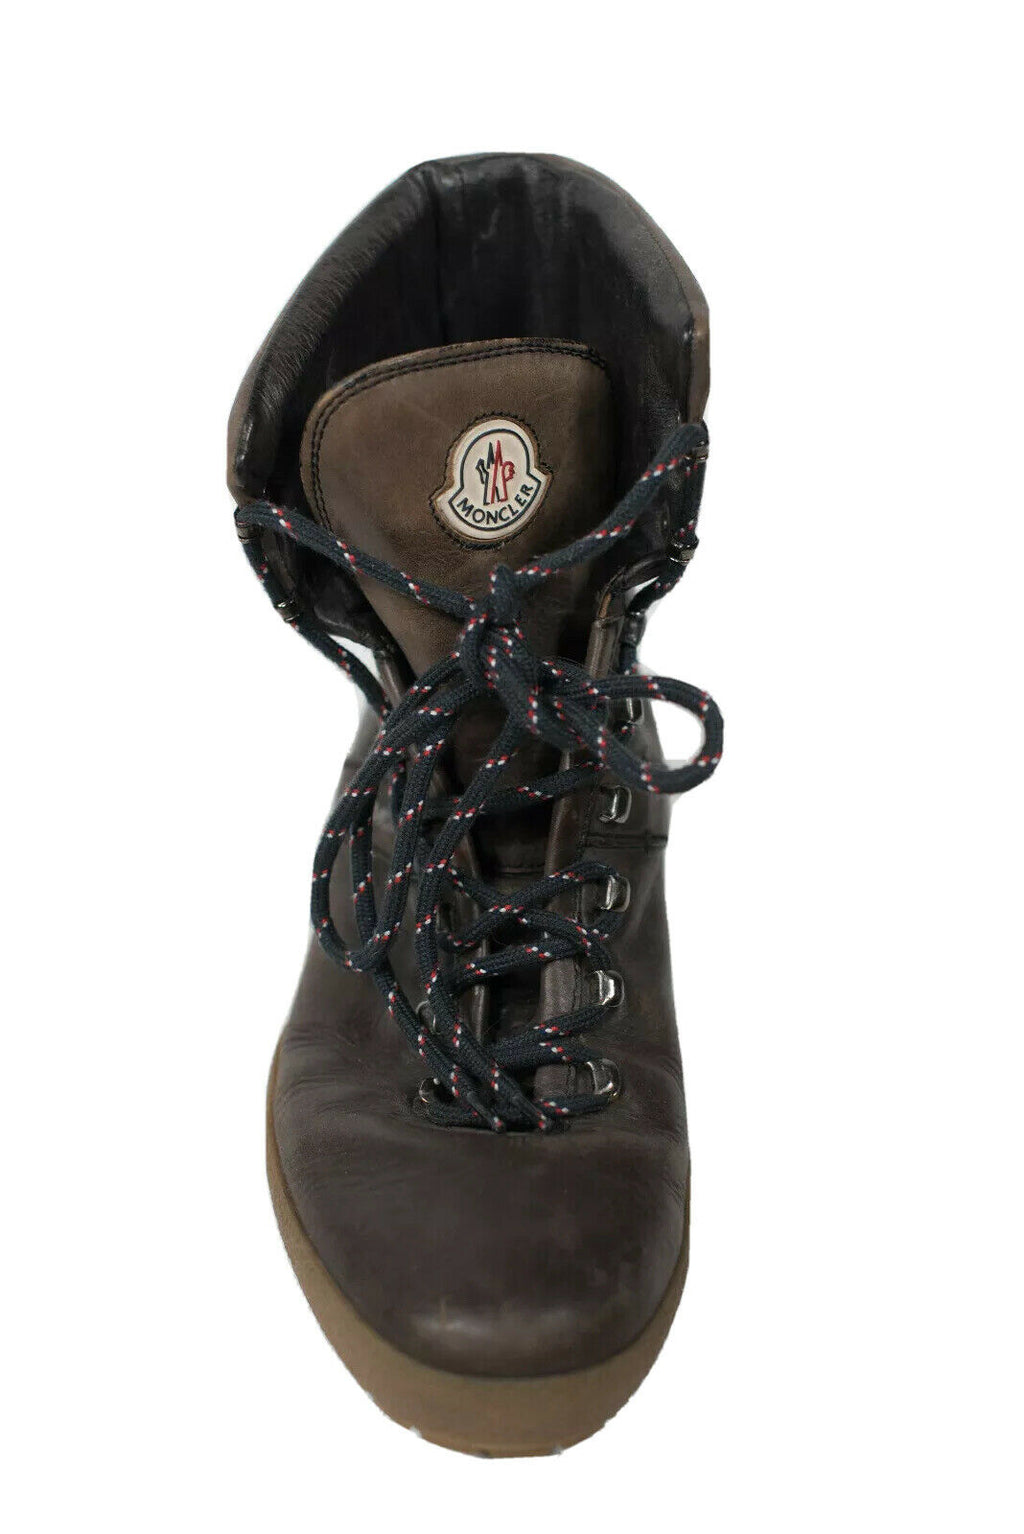 Moncler Mens Size 42 Brown Lace Up Boots